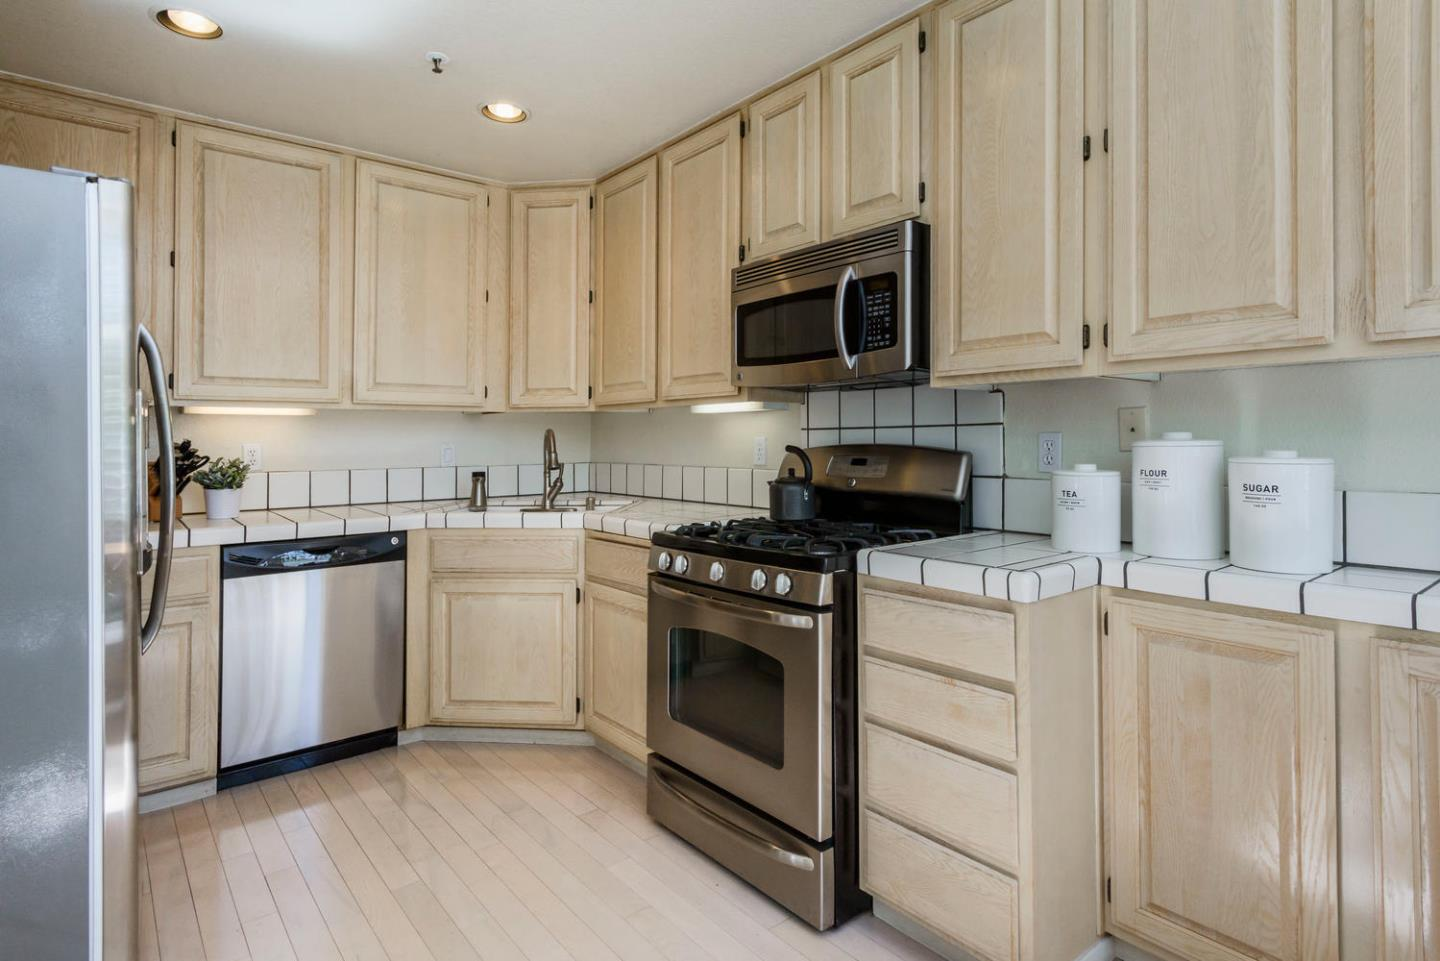 Additional photo for property listing at 851 Columbia Cir 604  REDWOOD CITY, CALIFORNIA 94065